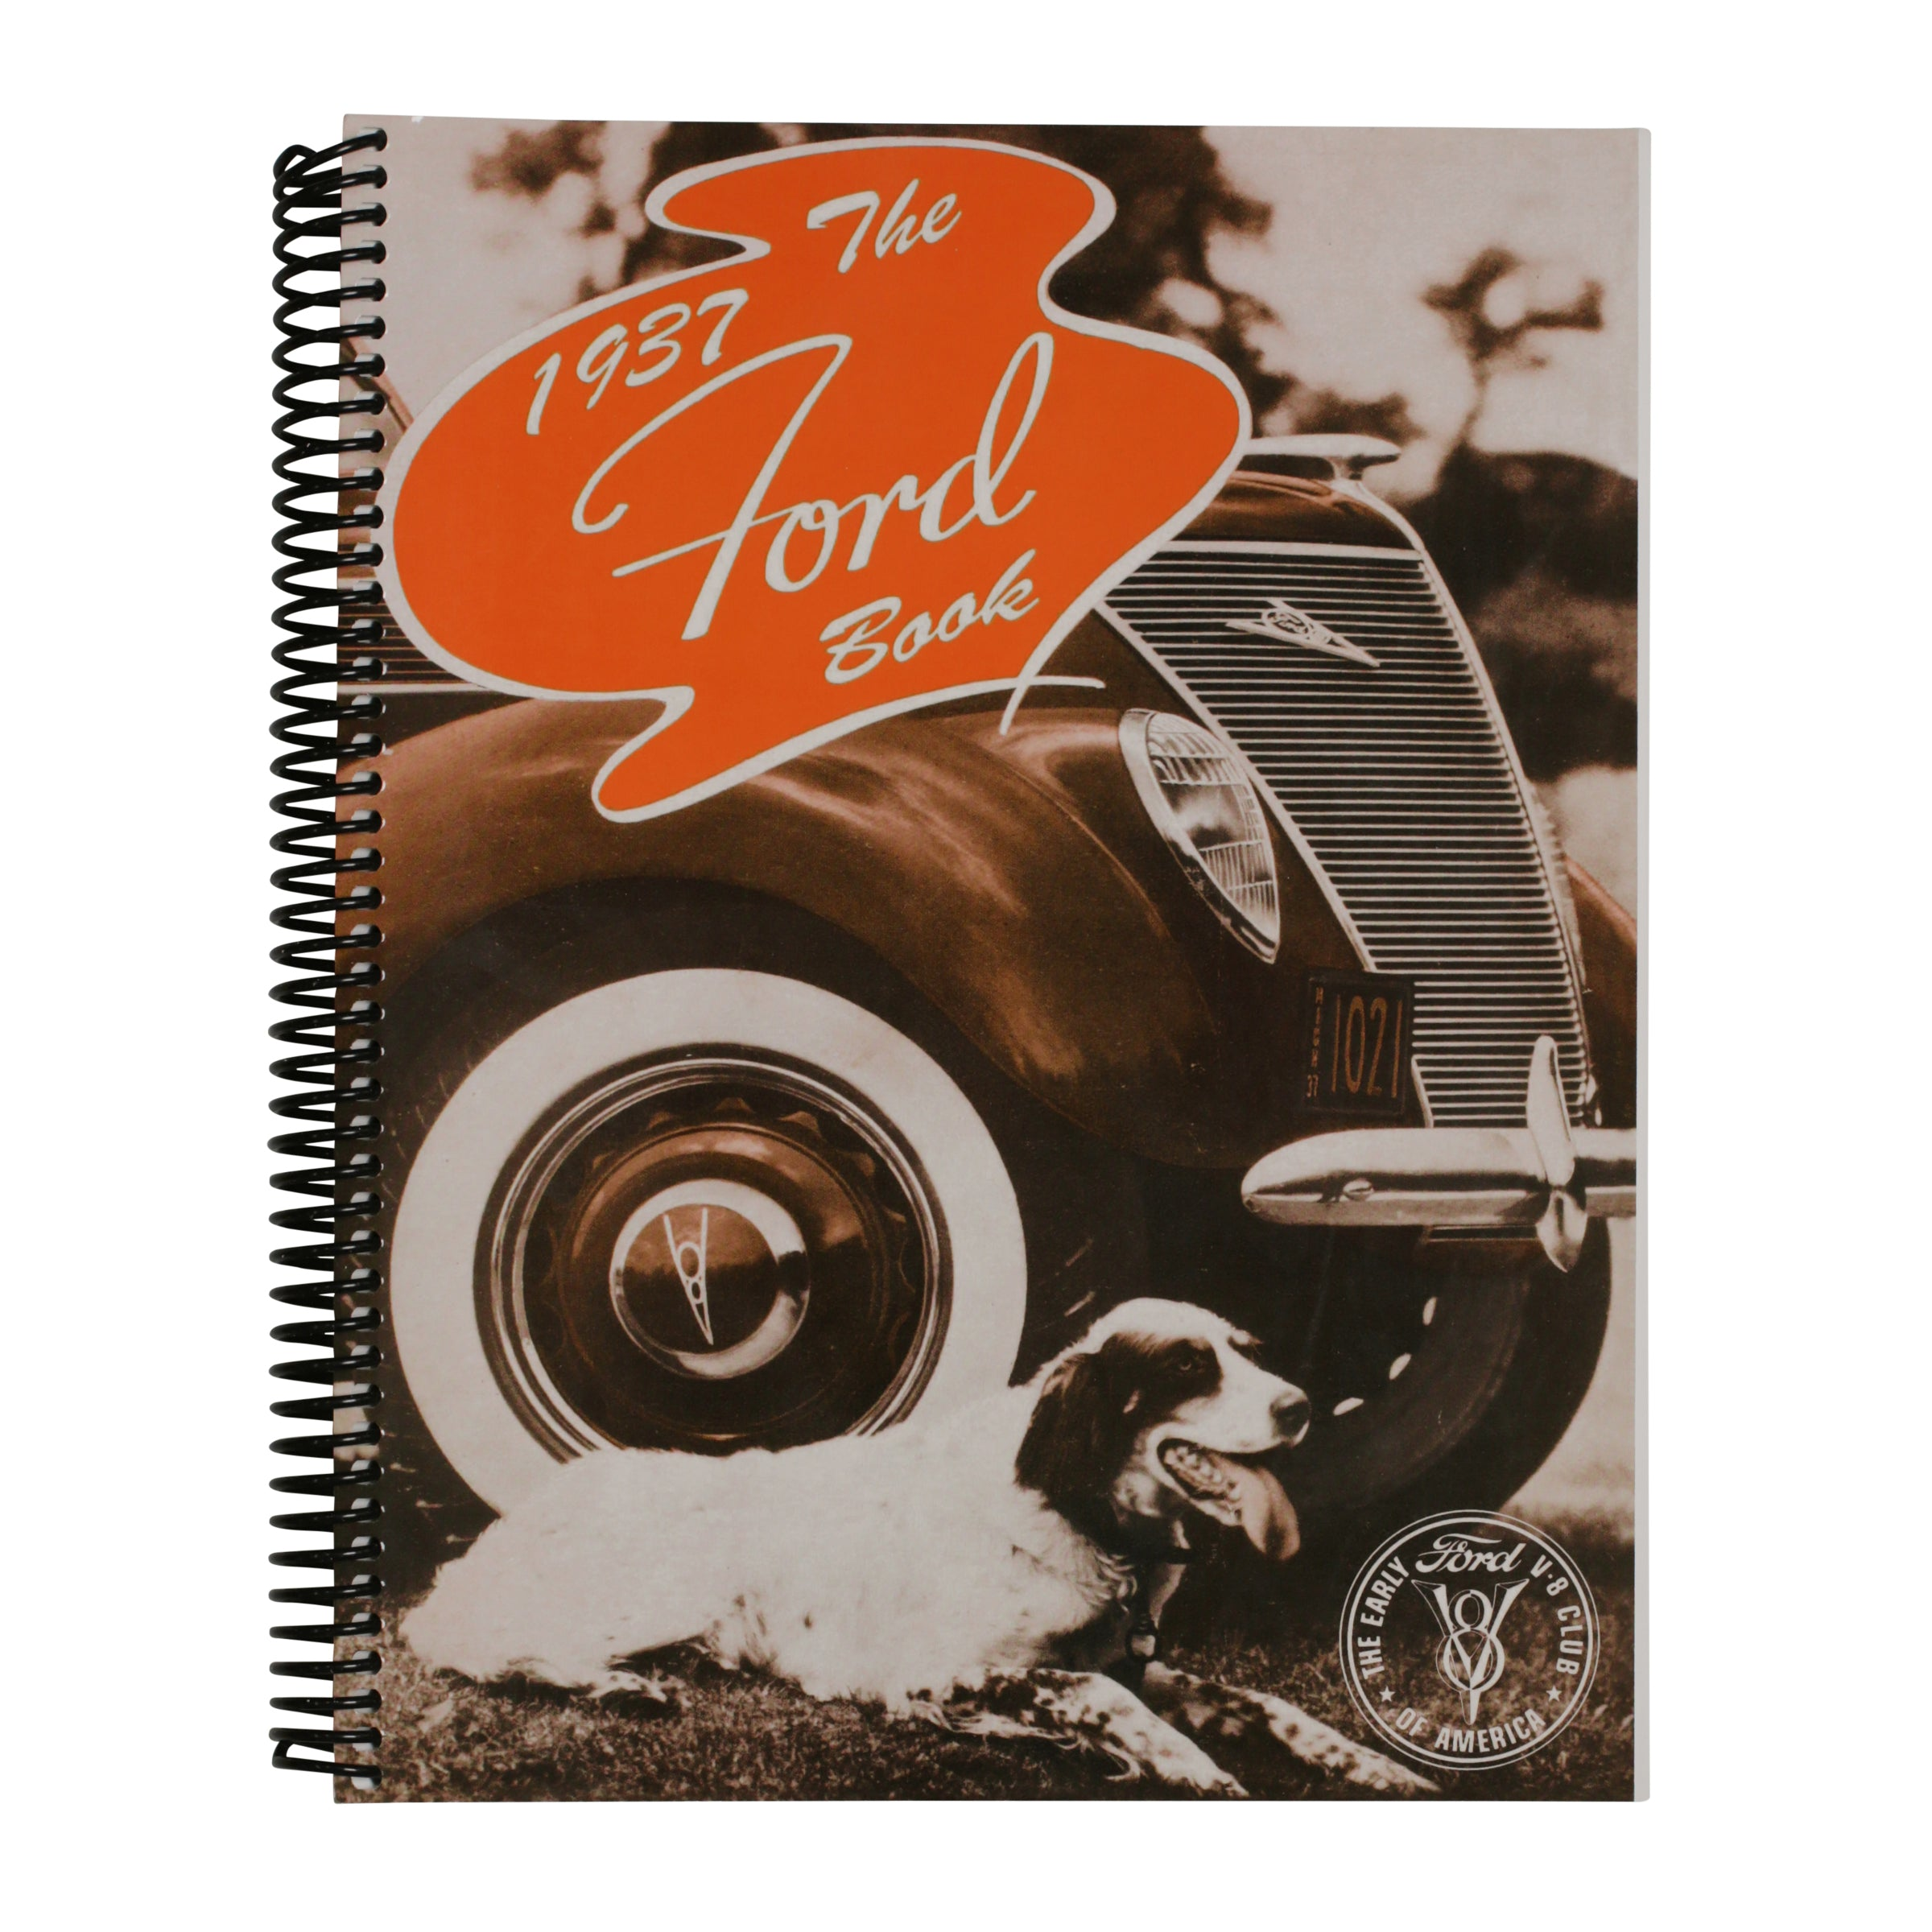 V-8 Club Information Book (Soft Cover) • 1937 Ford